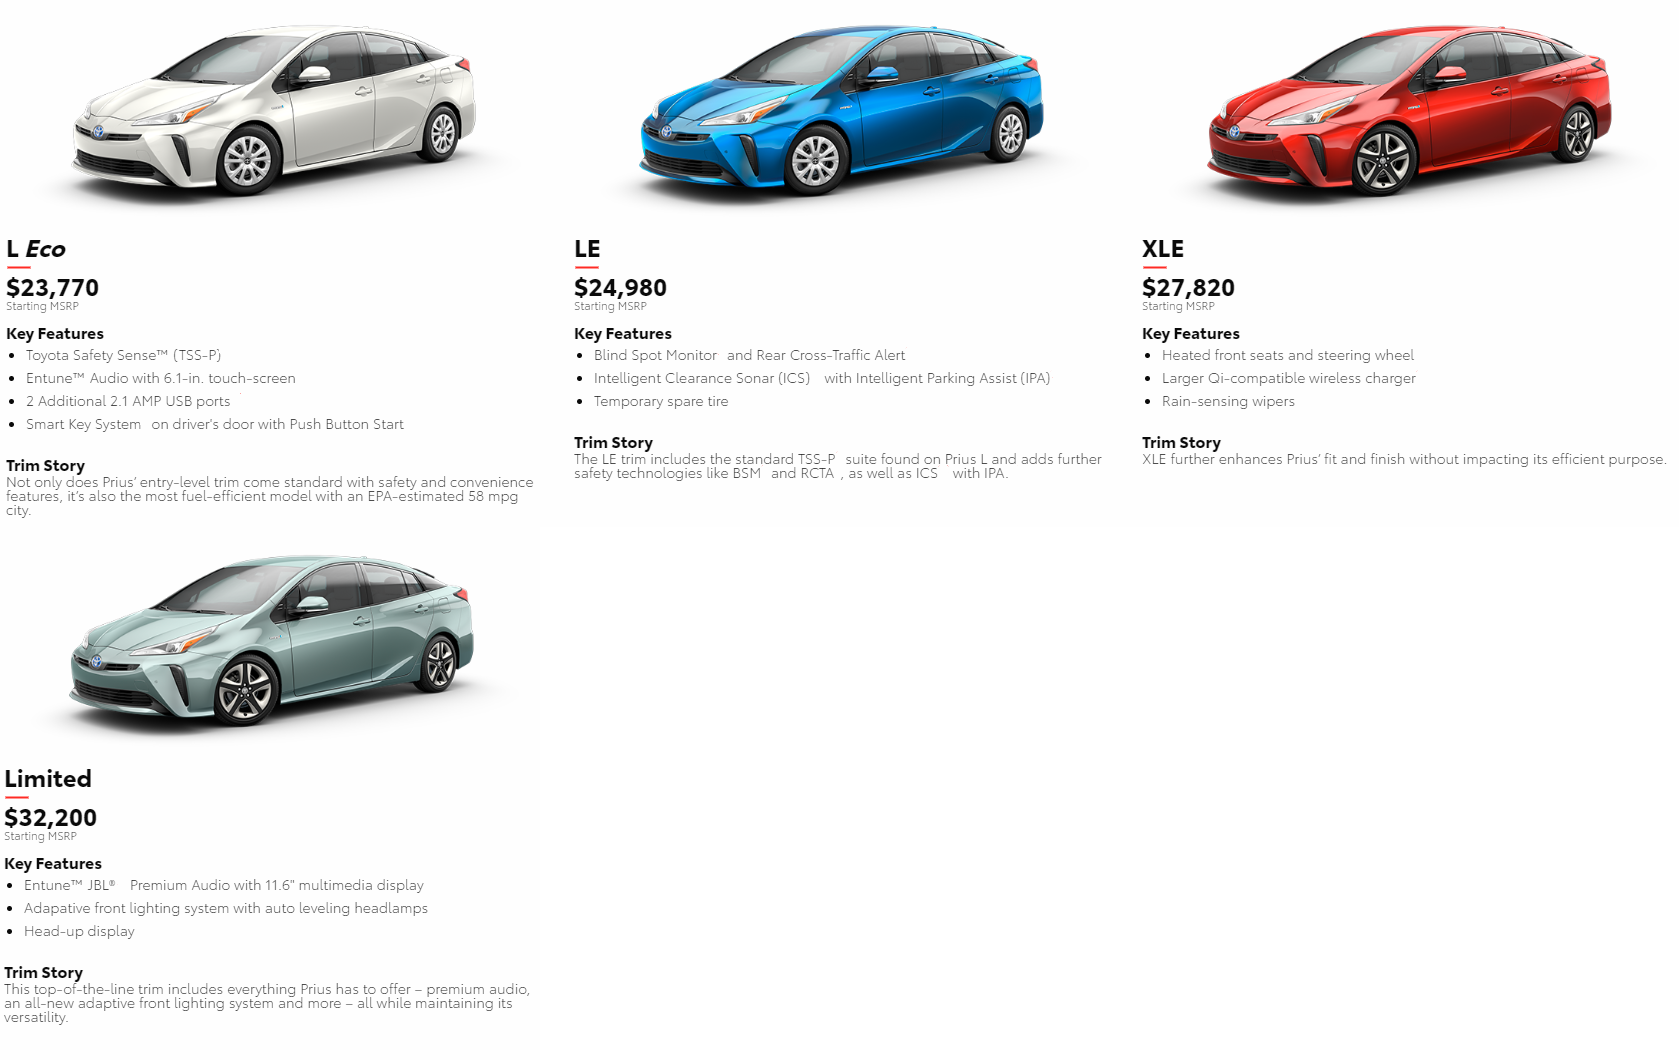 2019 Toyota Prius Trim Level Guide